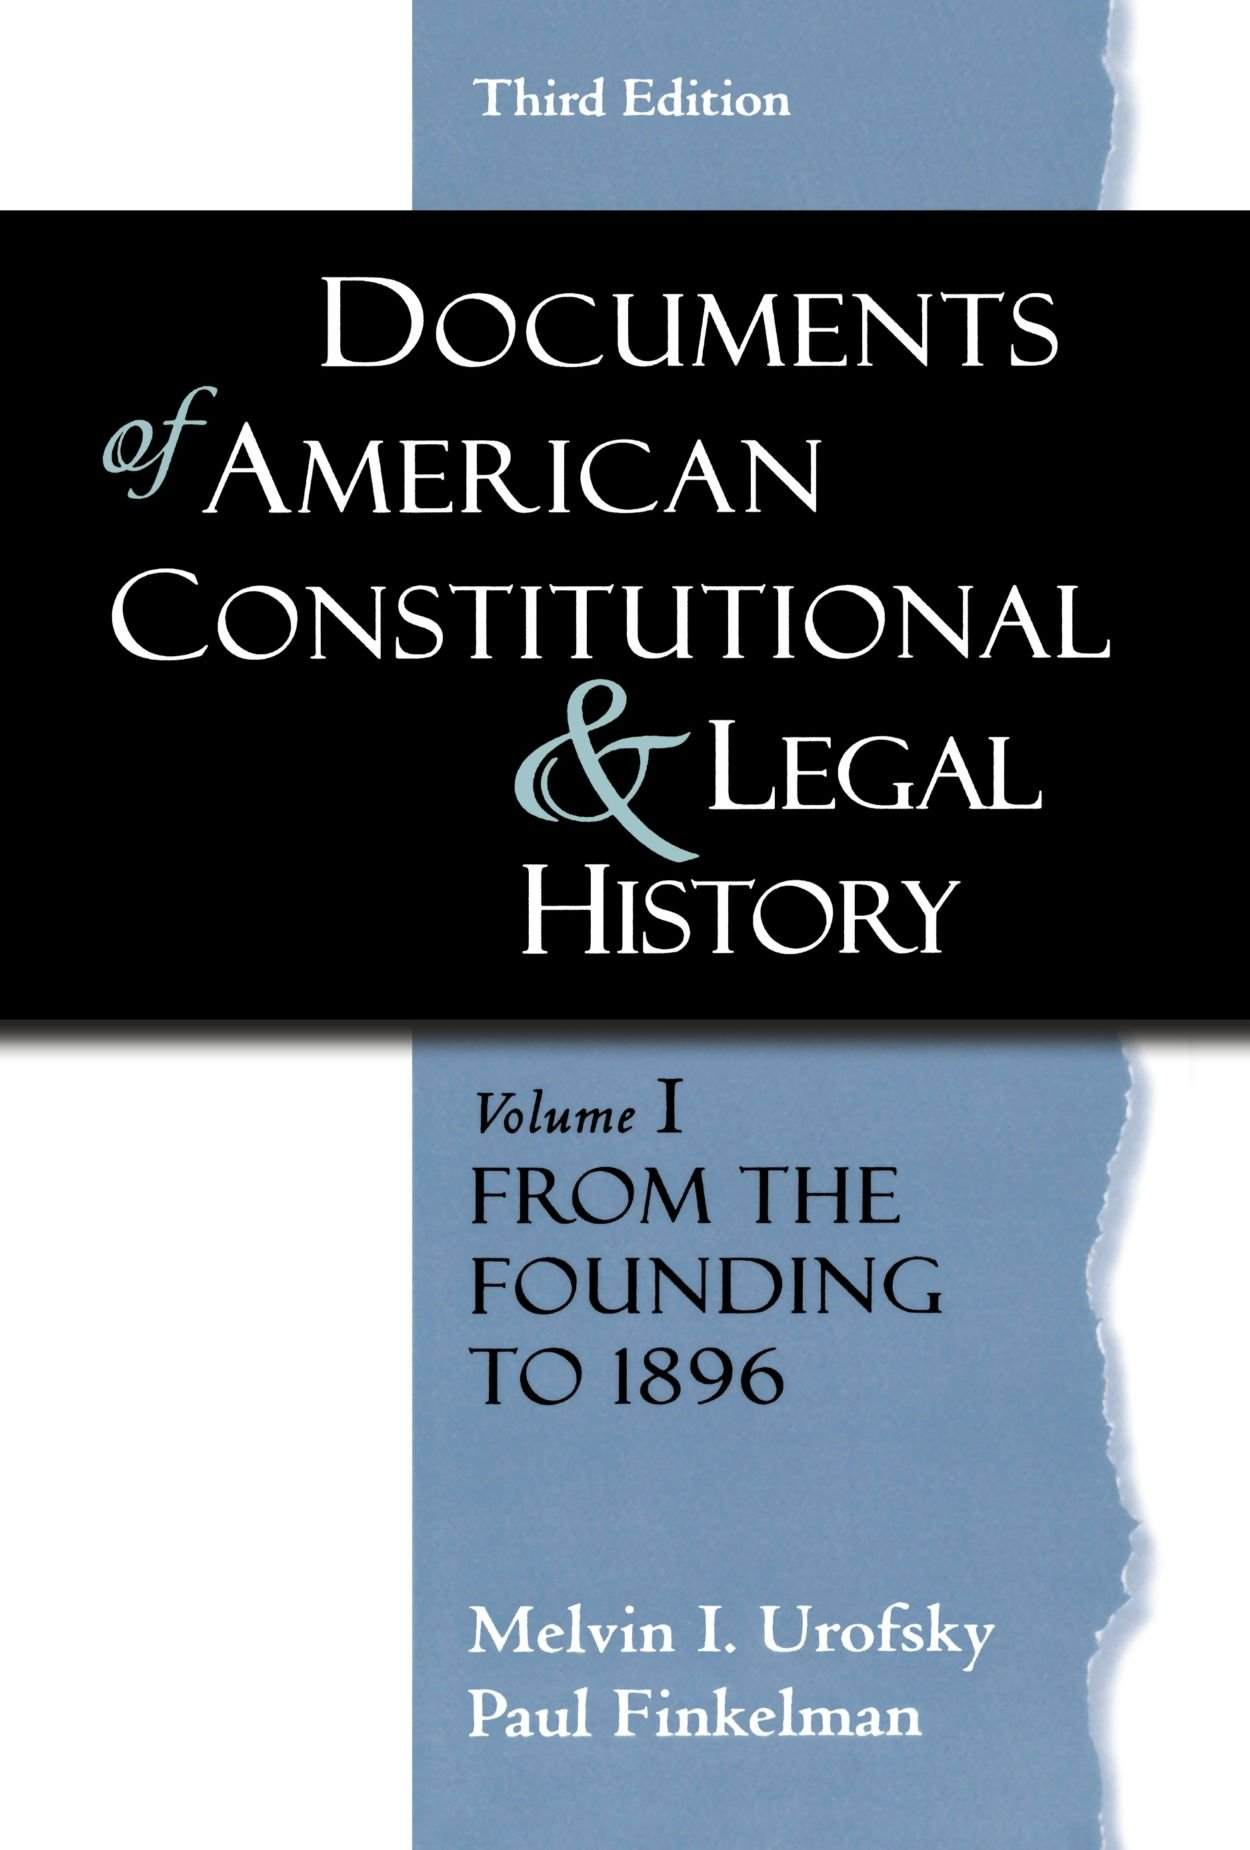 Documents of American Constitutional and Legal History: Volume 1: From the Founding to 1896 (Documents of American Constitutional & Legal History) by Oxford University Press